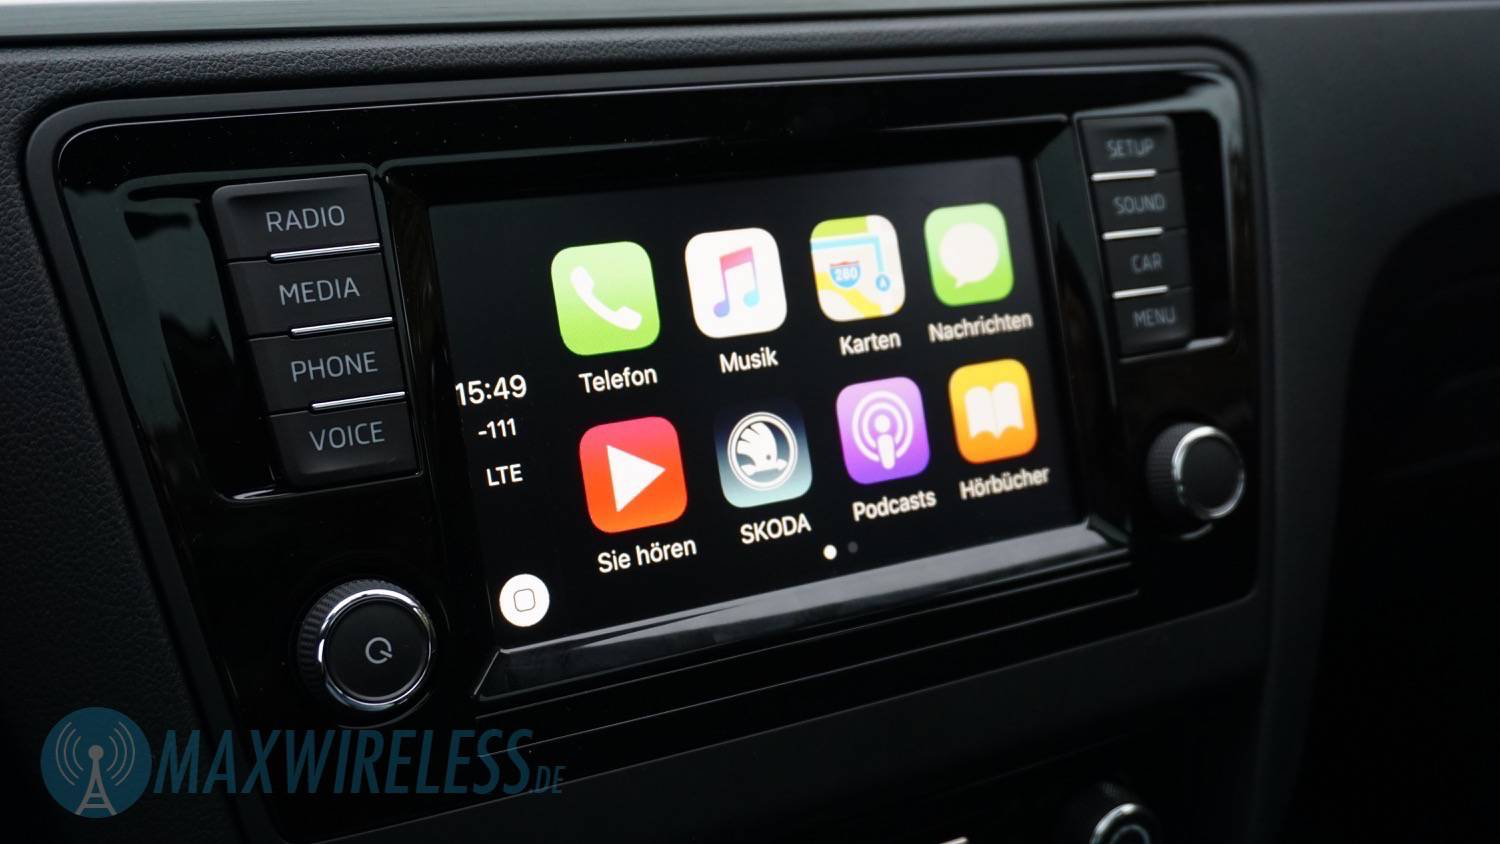 Apple Carplay Wireless >> Test: Skoda SmartLink mit Apple CarPlay und Android Auto | maxwireless.de